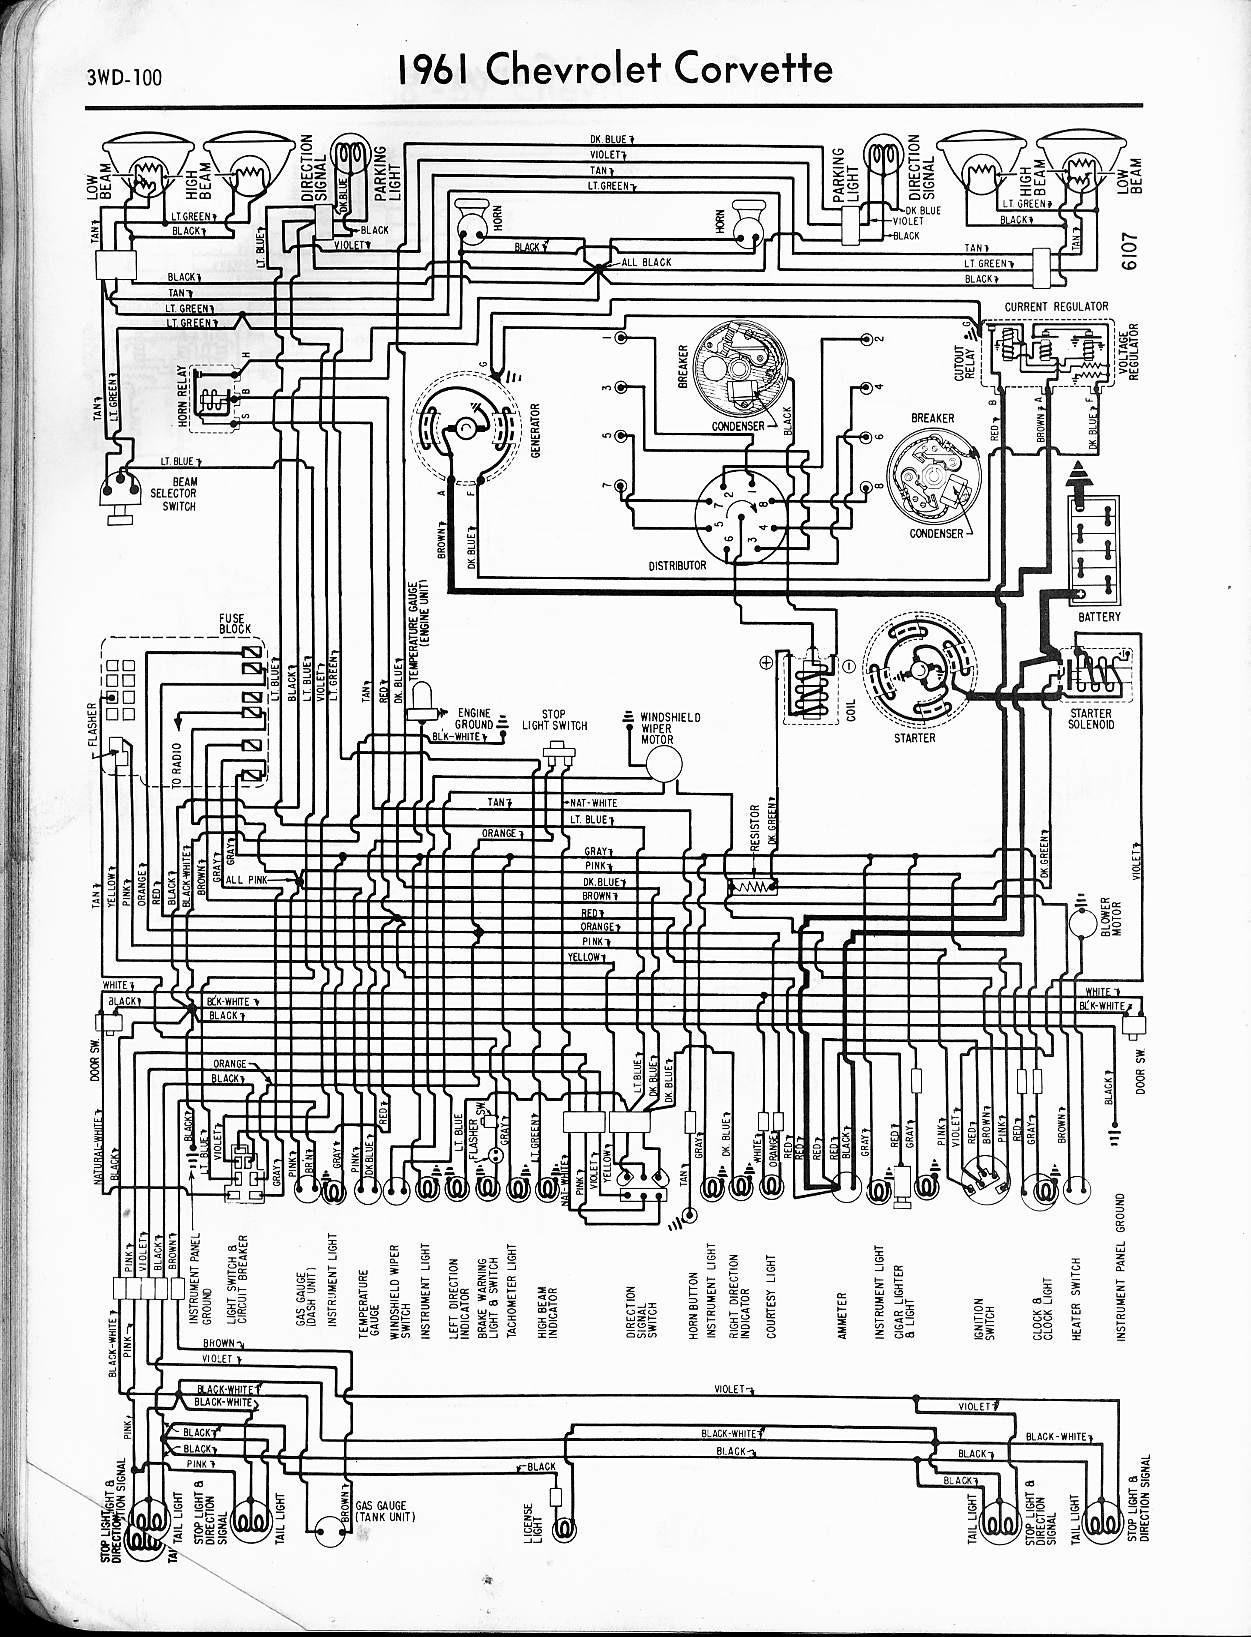 diagram] 79 corvette fuse box diagram free download wiring full version hd  quality download wiring - diagramdianer.banficesare.it  banfi cesare